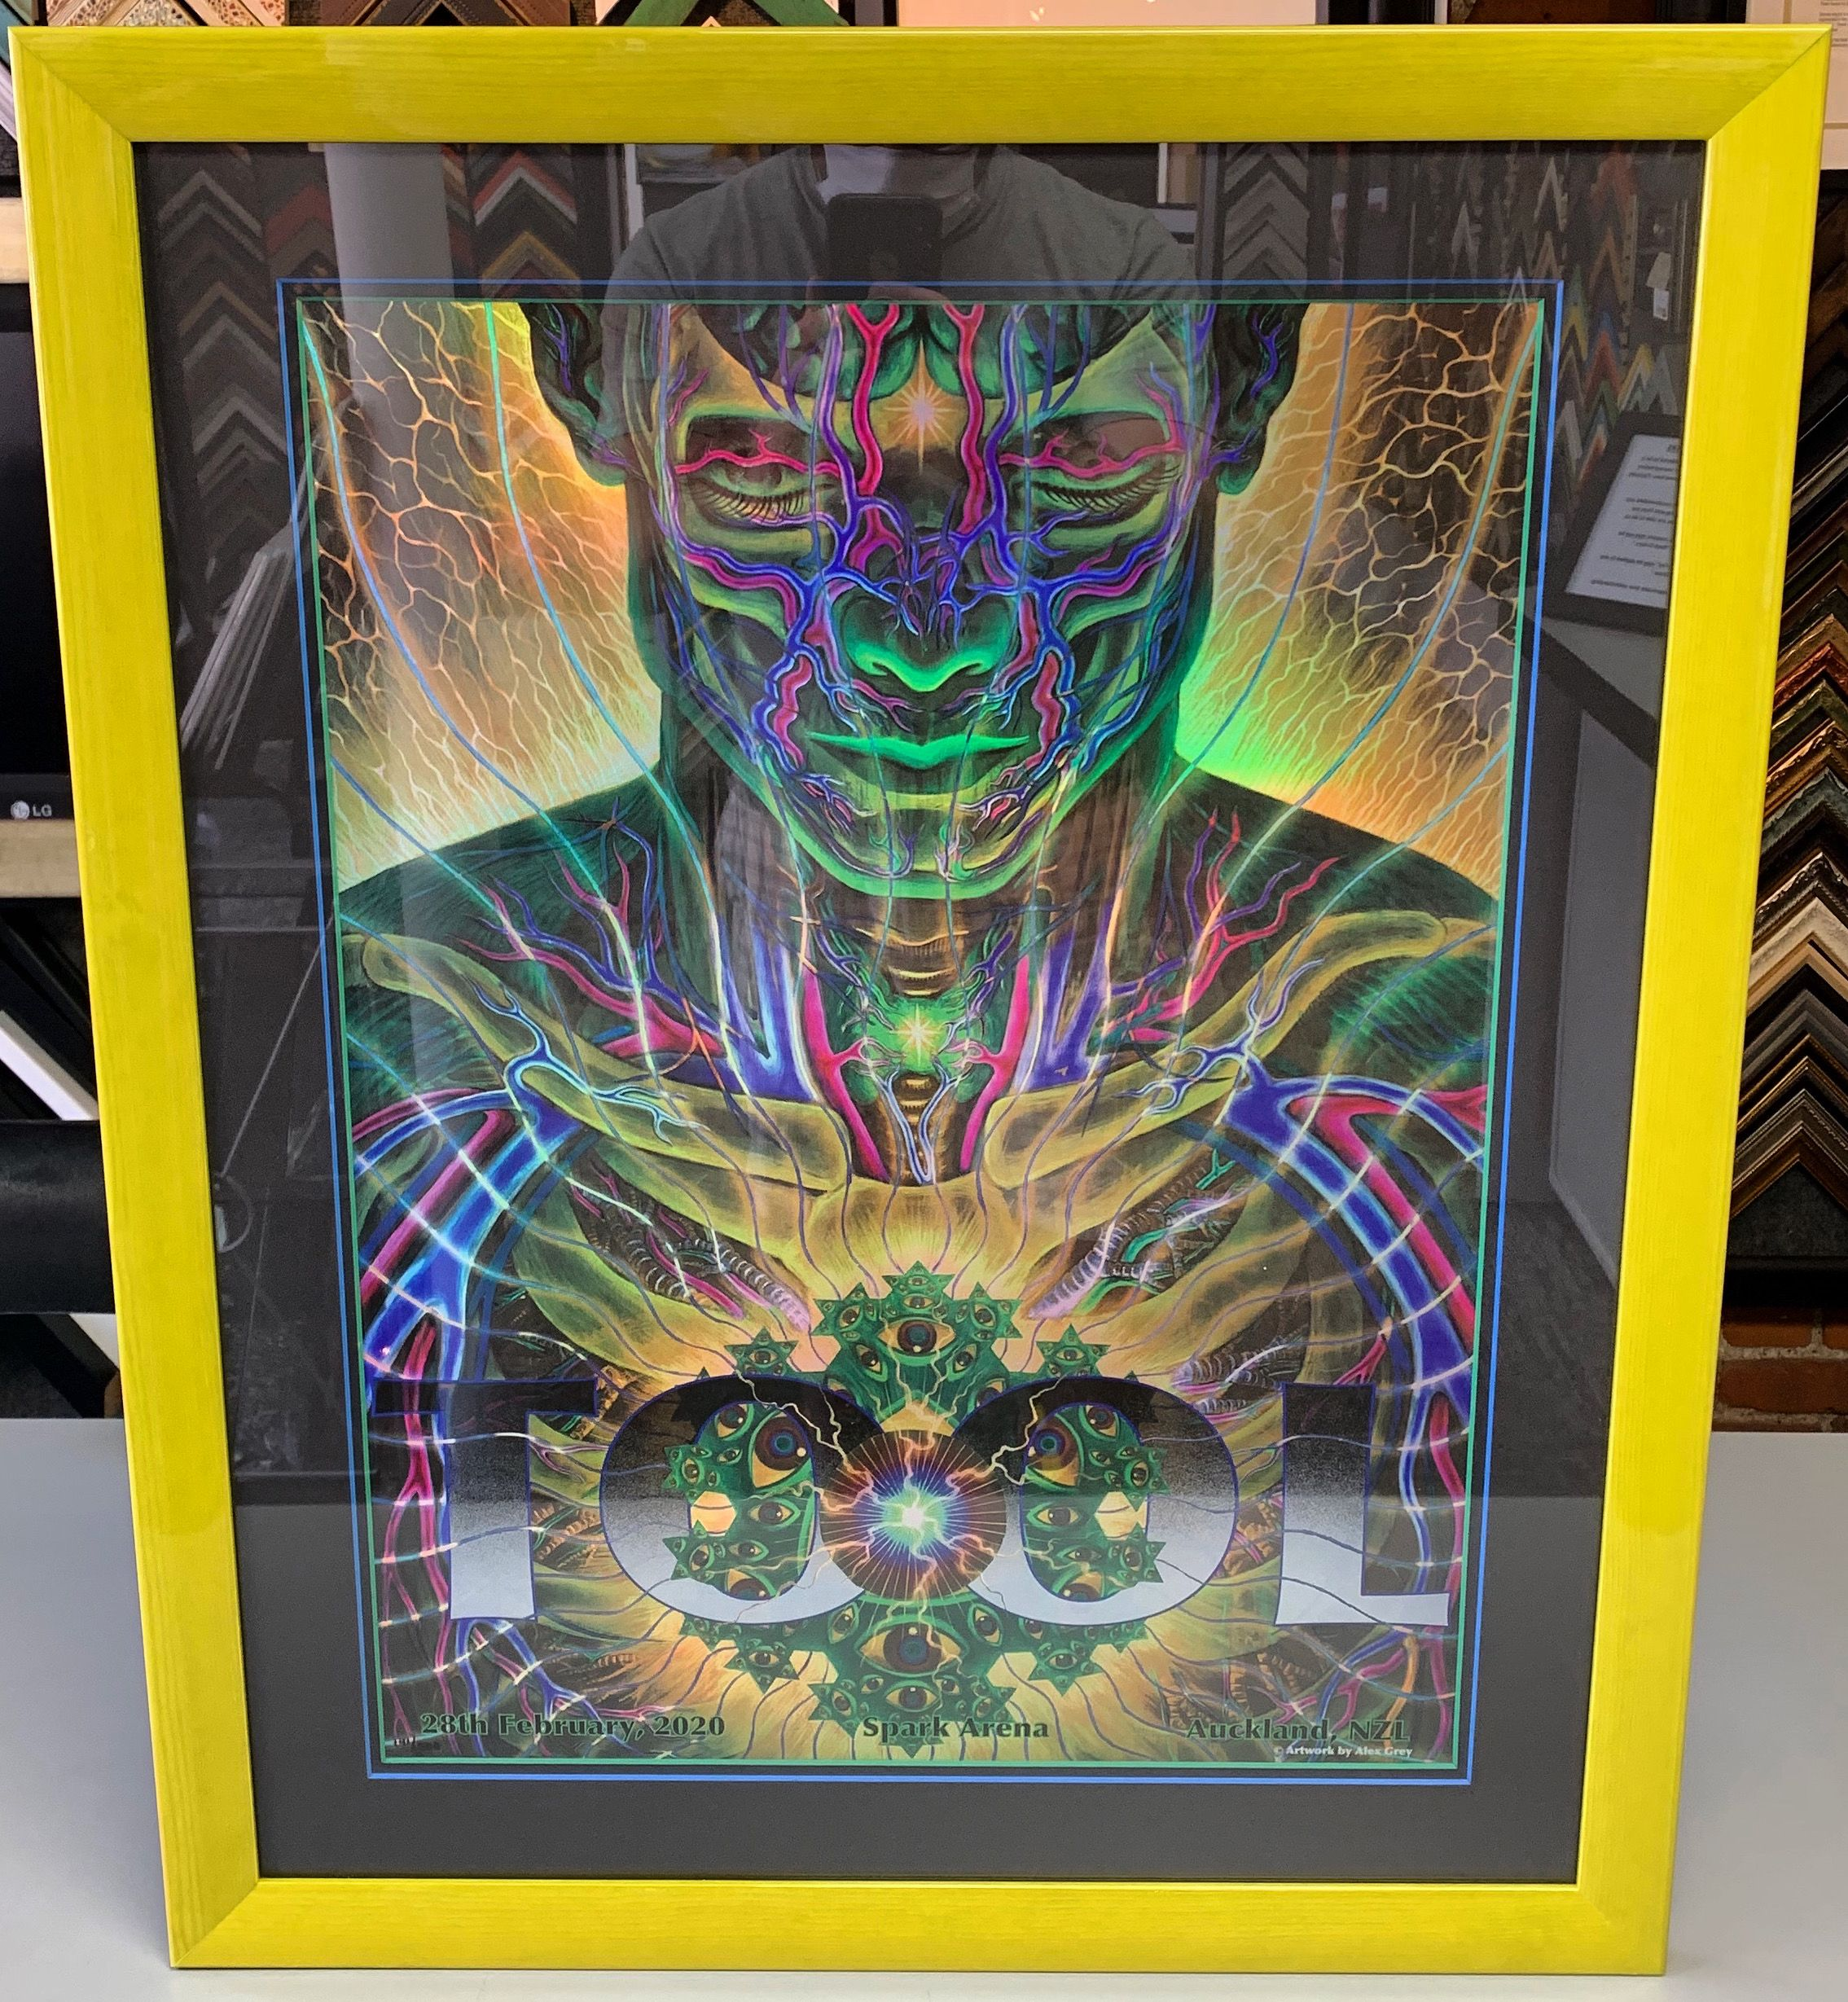 Limited Edition Tool Auckland New Zealand print using two